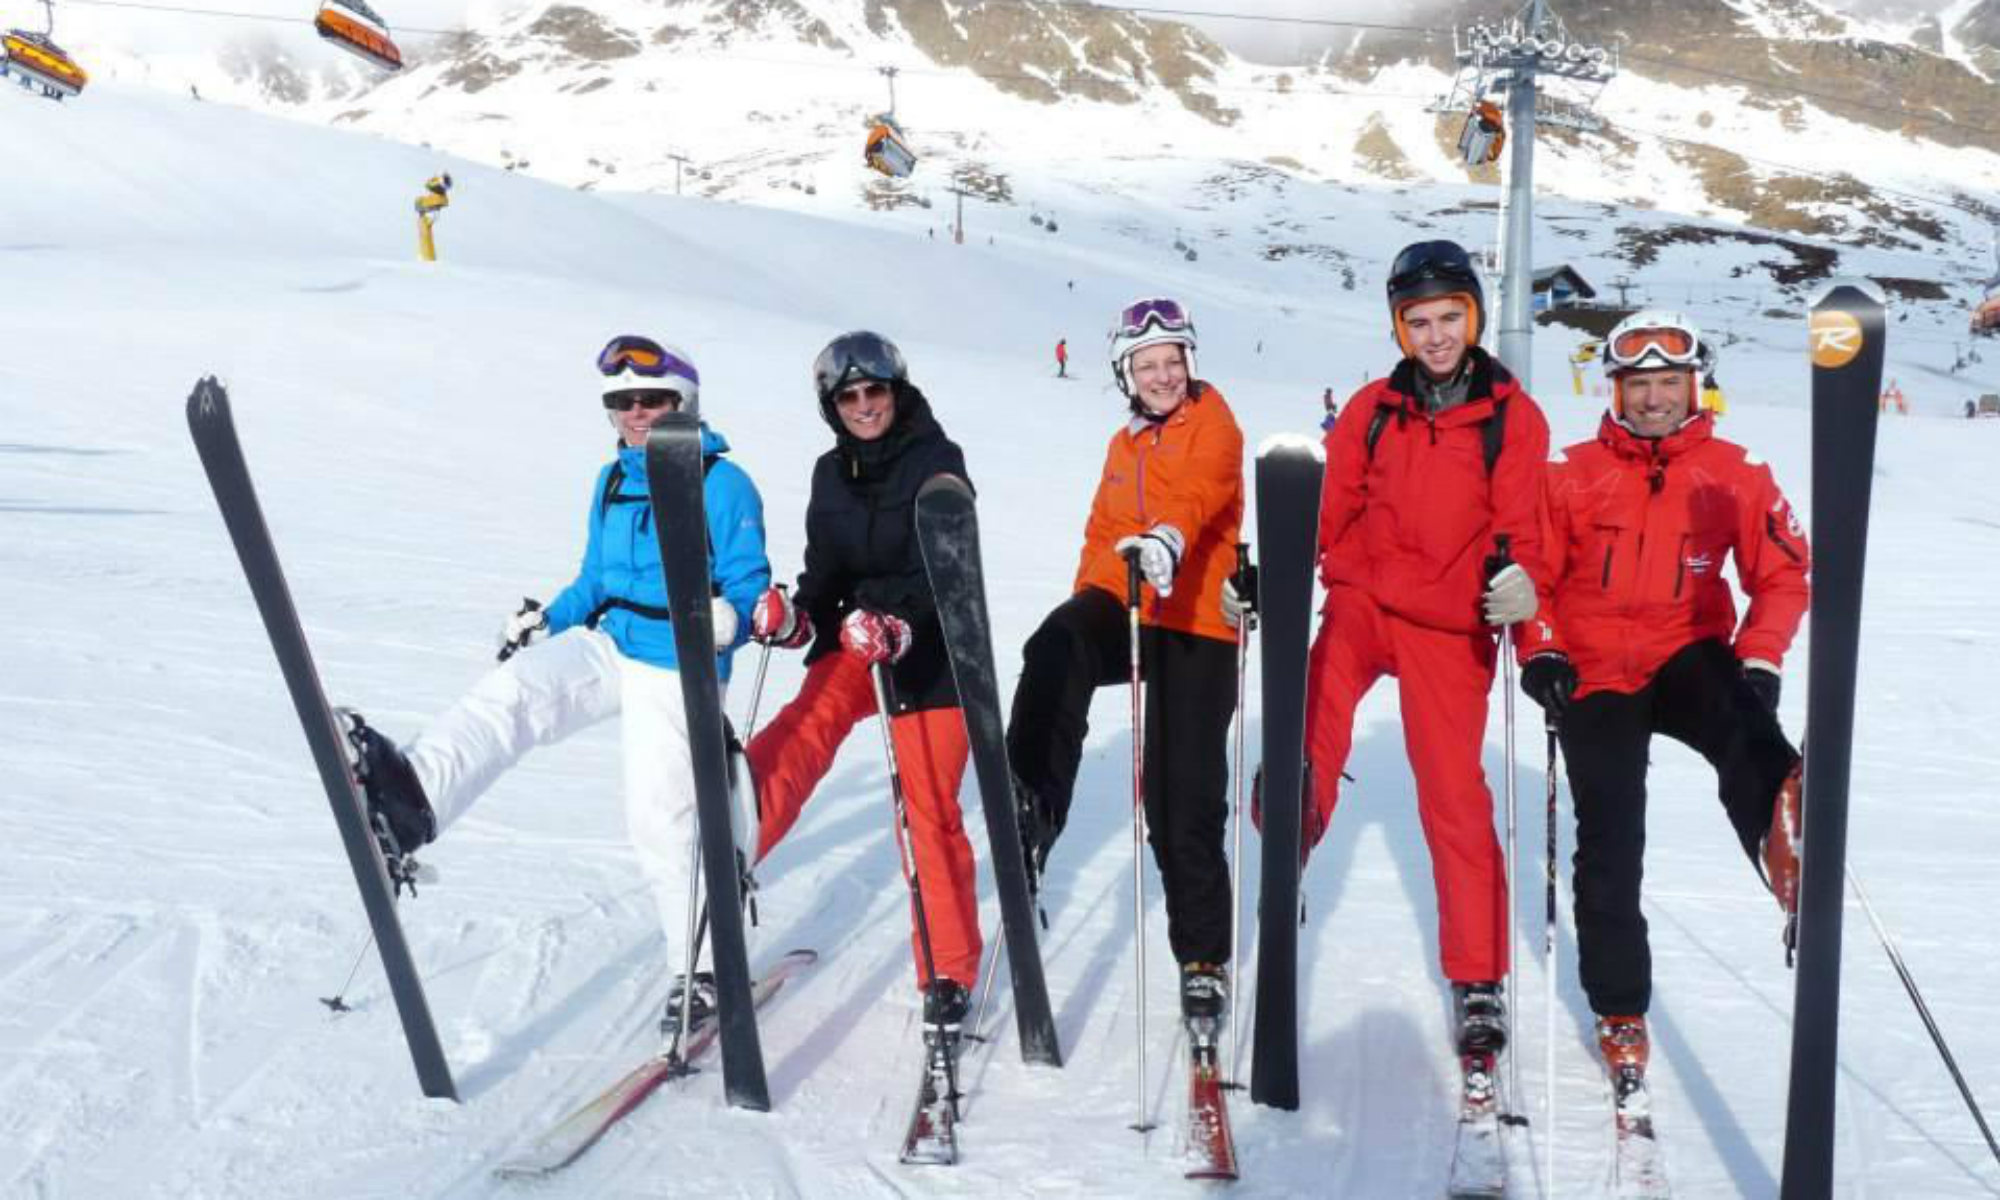 Participants of a ski lesson for adults having fun.